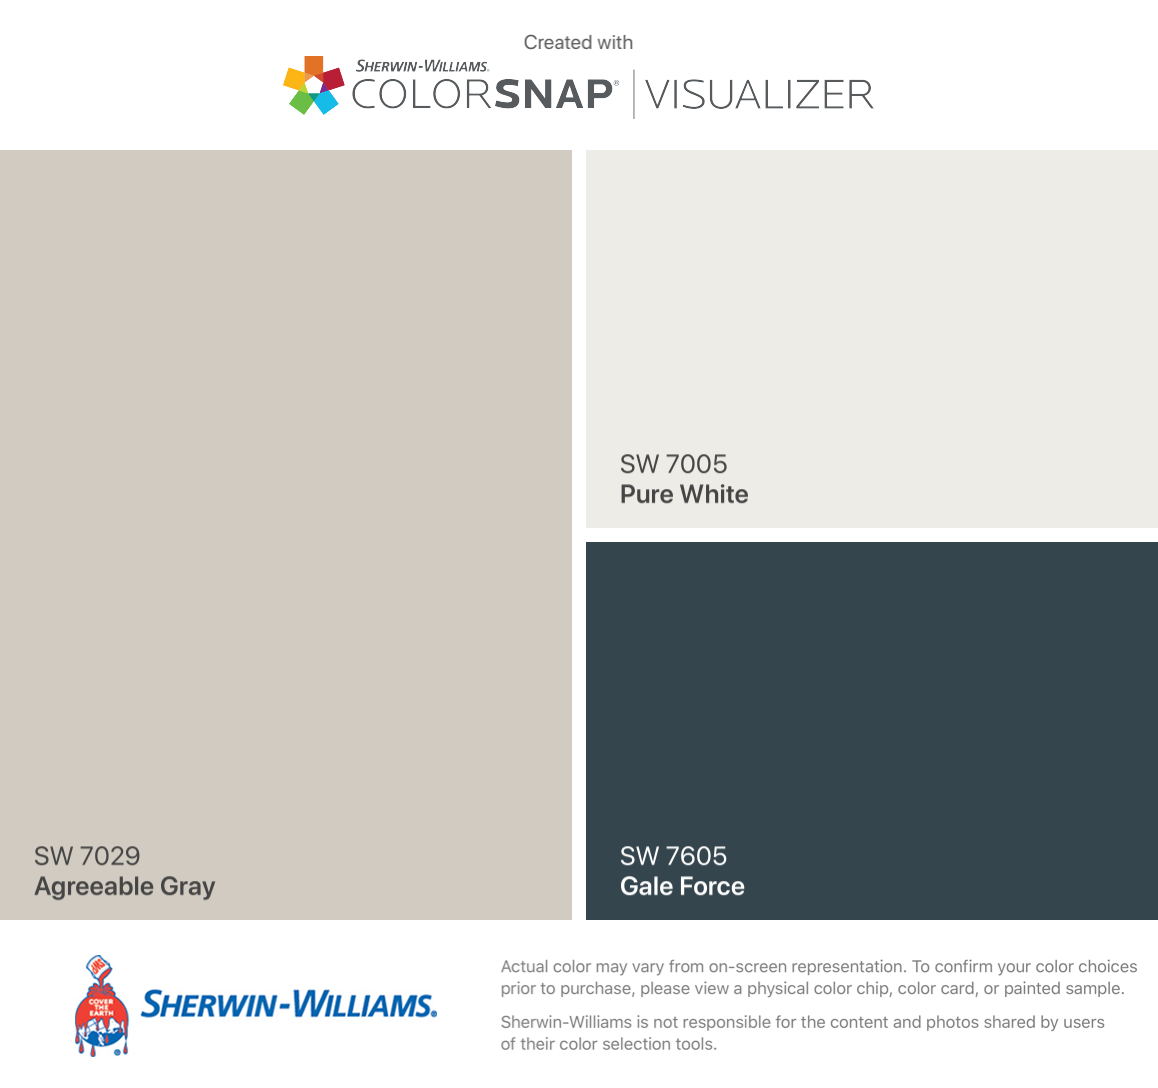 I found these colors with ColorSnap® Visualizer for iPhone by Sherwin-Williams: Agreeable Gray (SW 7029), Pure White (SW 7005), Gale Force (SW 7605). #sherwinwilliamsagreeablegray I found these colors with ColorSnap® Visualizer for iPhone by Sherwin-Williams: Agreeable Gray (SW 7029), Pure White (SW 7005), Gale Force (SW 7605). #sherwinwilliamsagreeablegray I found these colors with ColorSnap® Visualizer for iPhone by Sherwin-Williams: Agreeable Gray (SW 7029), Pure White (SW 7005), Gale Forc #sherwinwilliamsagreeablegray